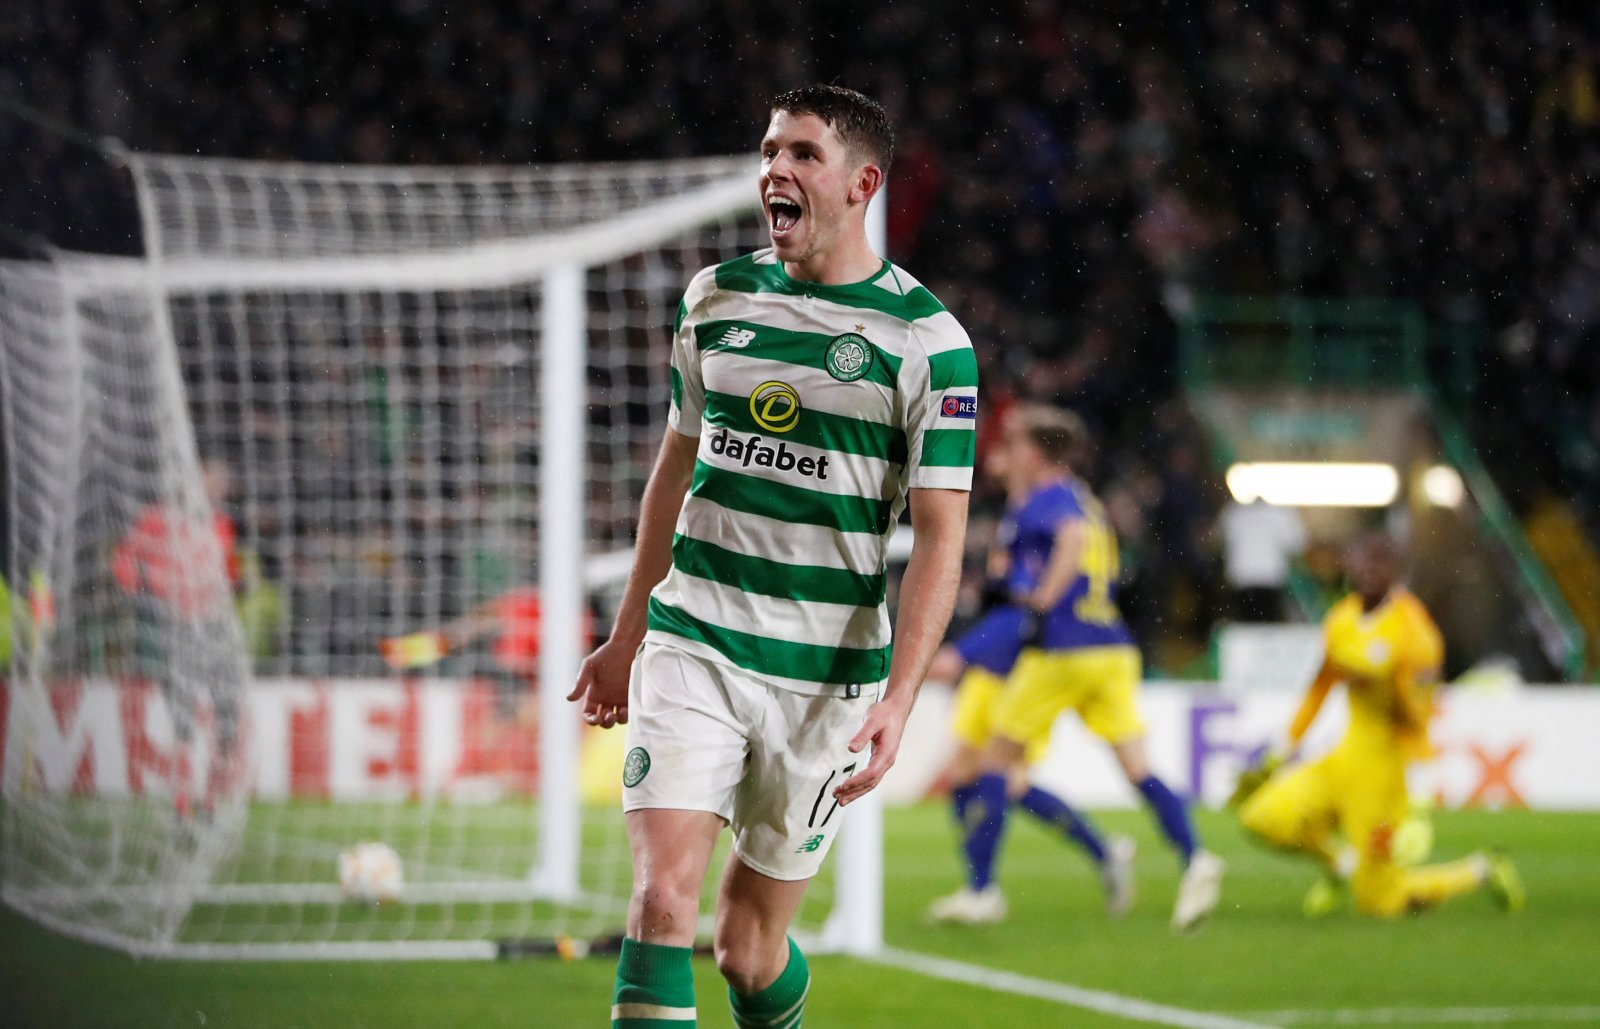 Celtic: Ryan Christie aspiring to emulate 'frightening' Kevin De Bruyne